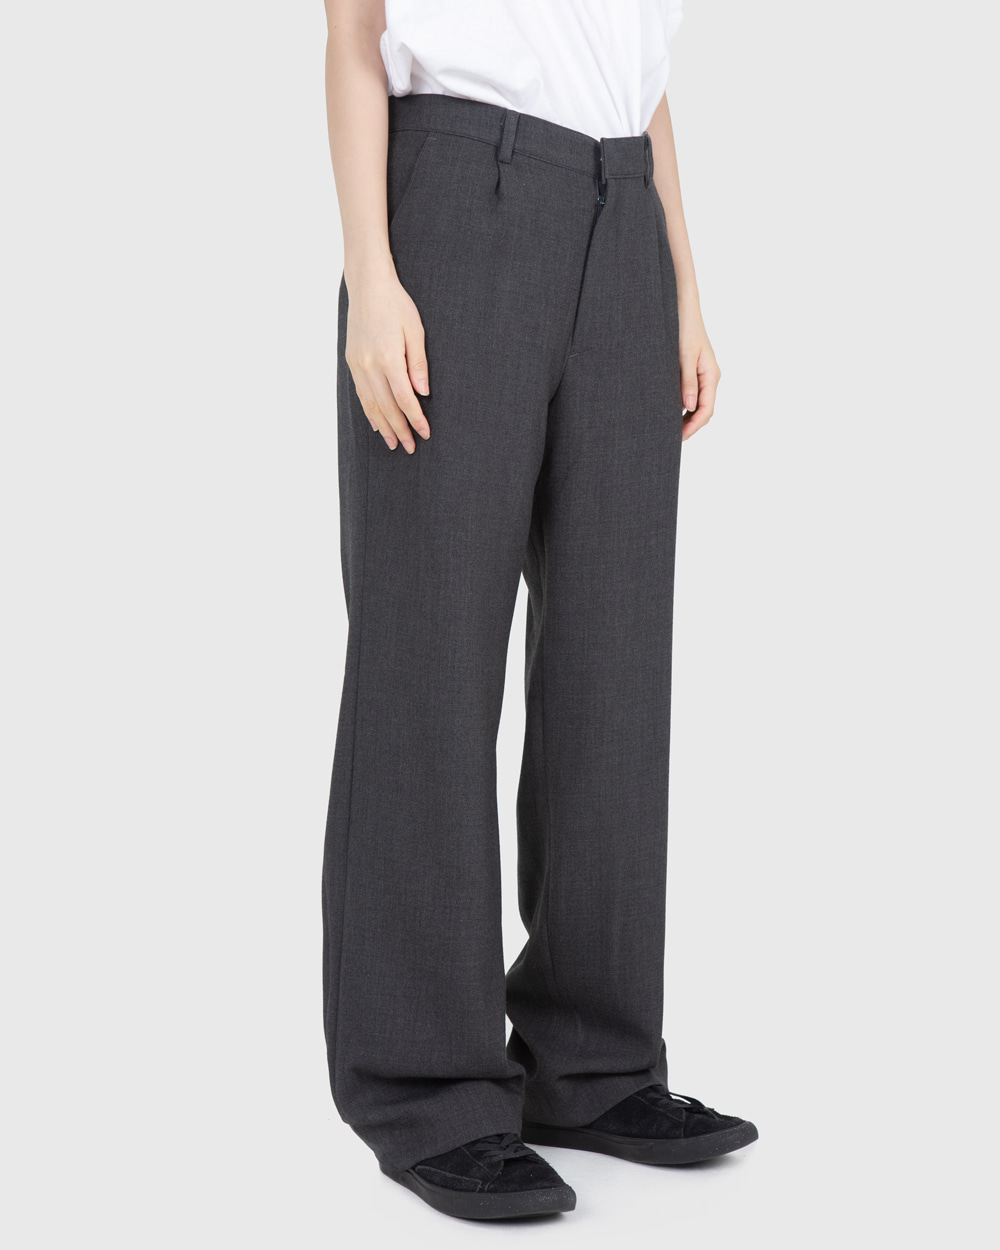 raucohouse-FW LOOSE WIDE SLACKS - RAUCO HOUSE♡韓國男裝褲子